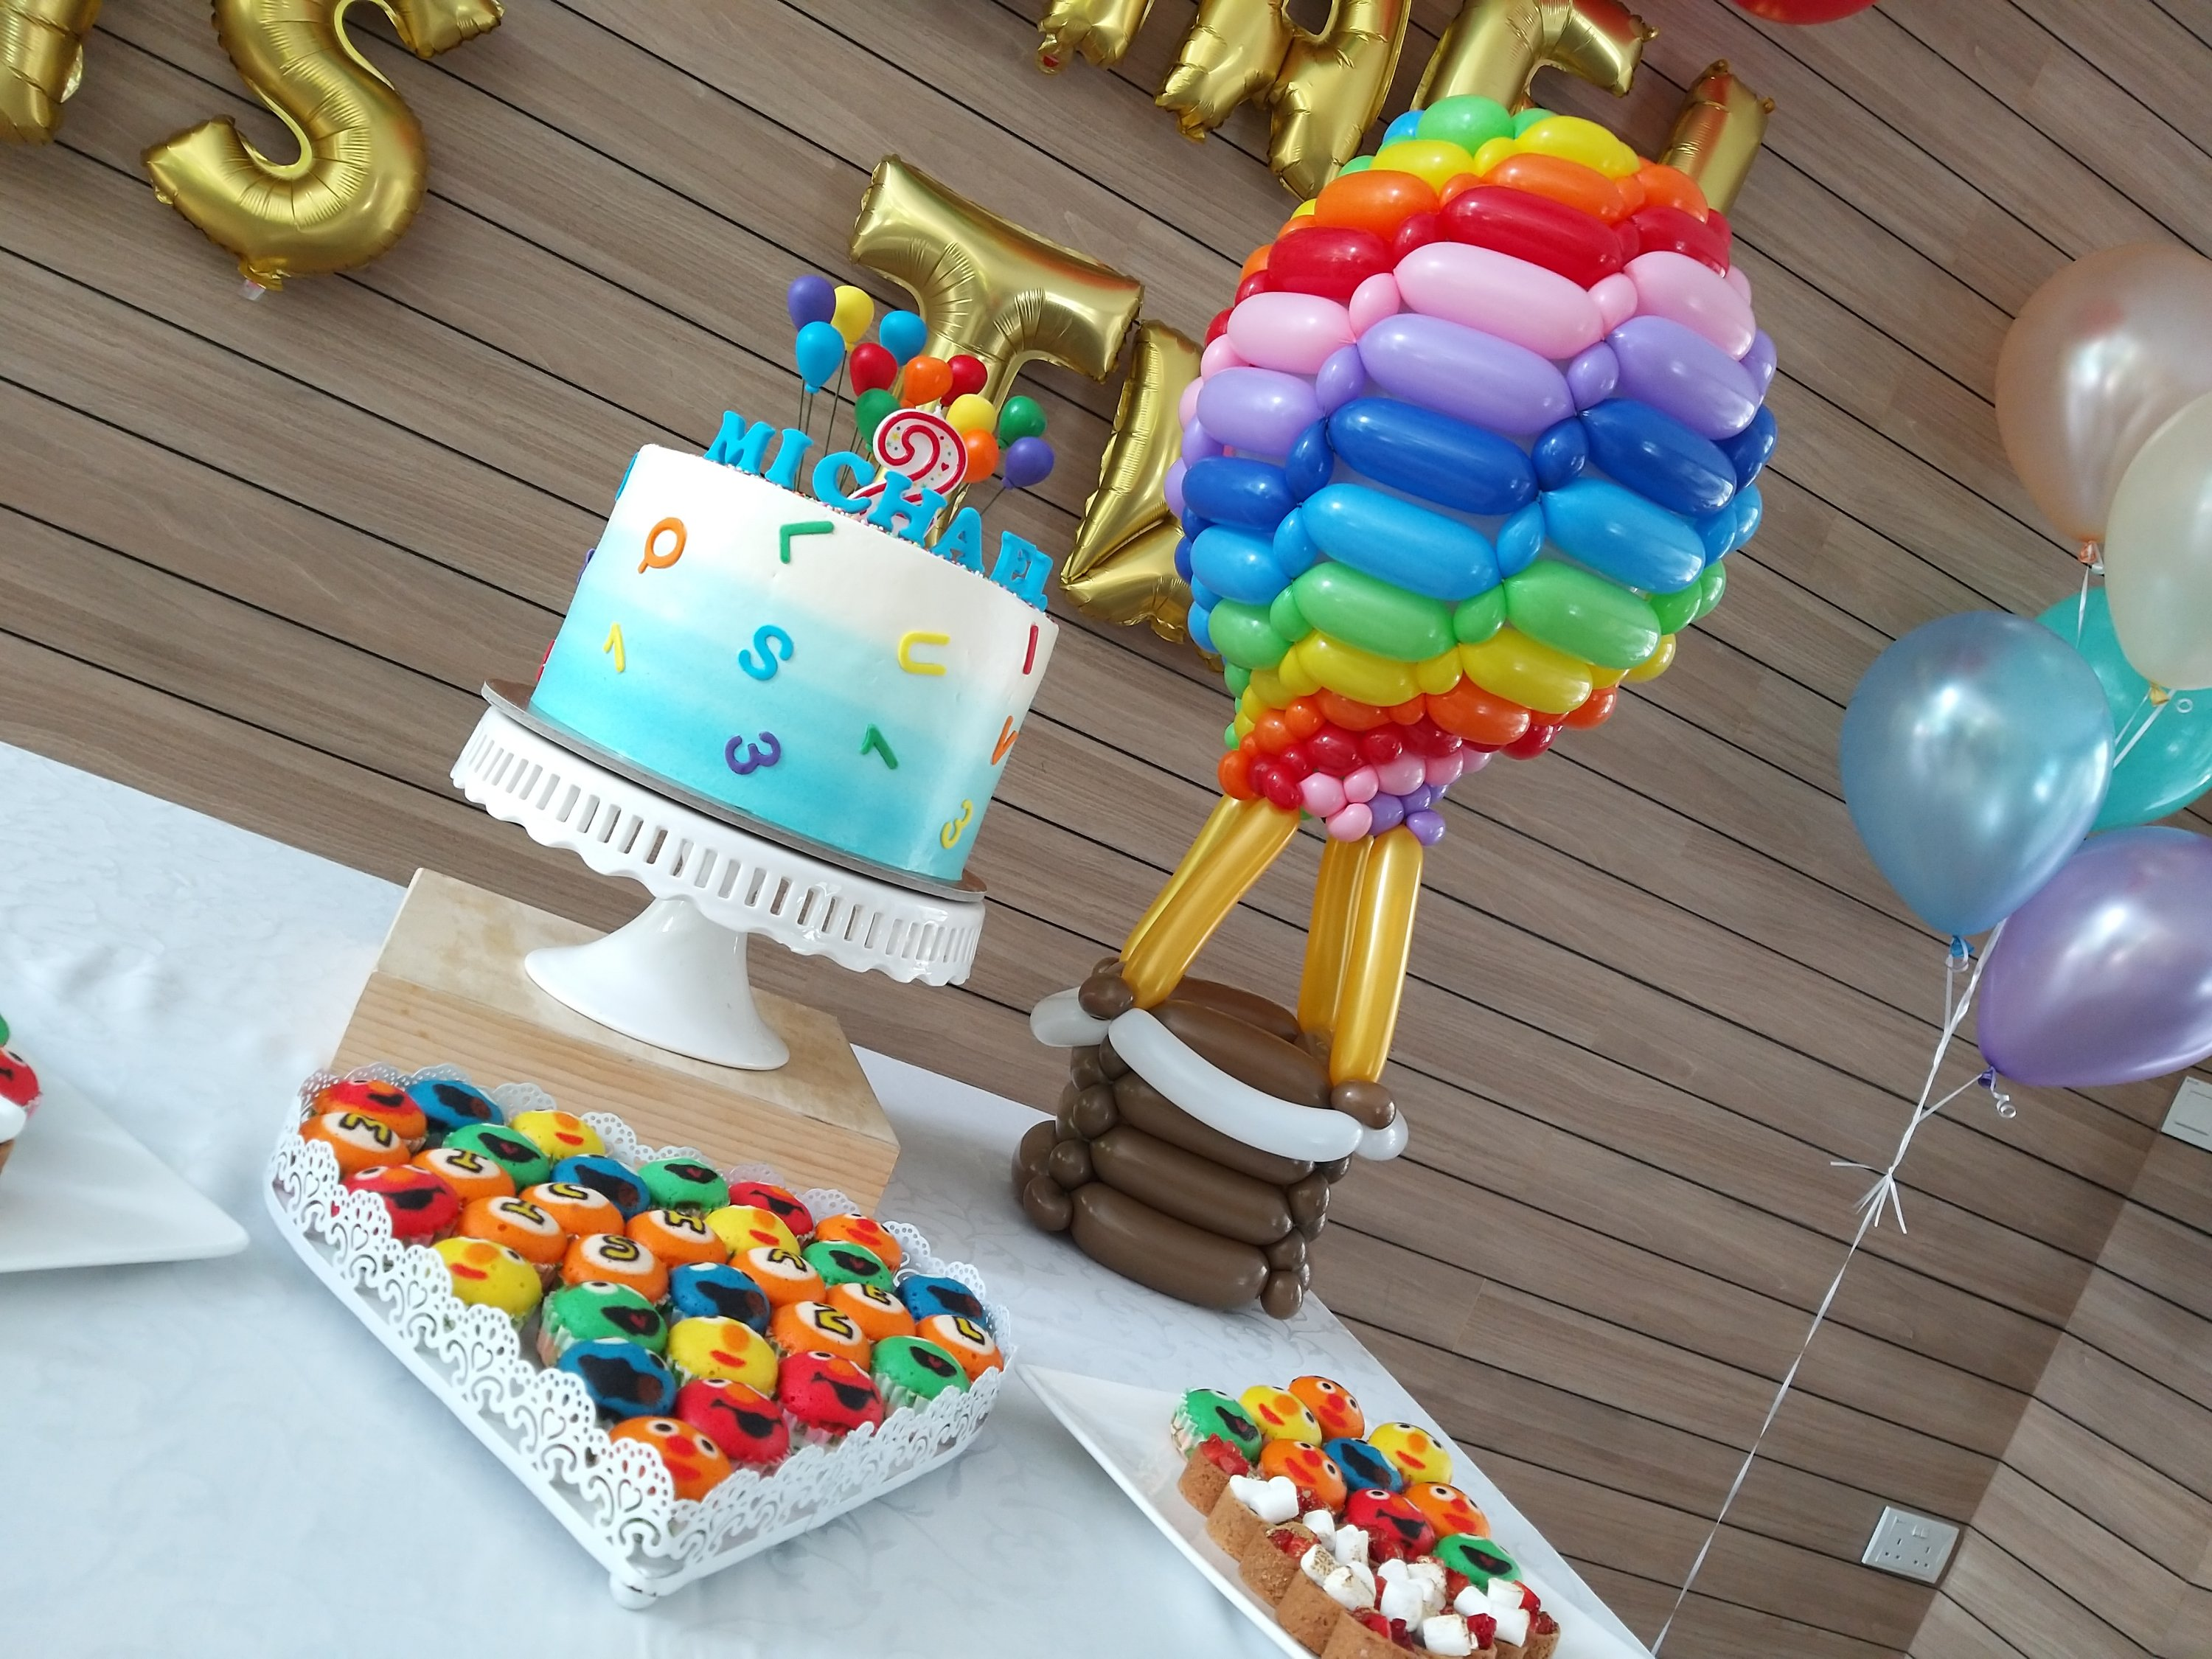 , Birthday party balloon decorations and balloon sculpting, Singapore Balloon Decoration Services - Balloon Workshop and Balloon Sculpting